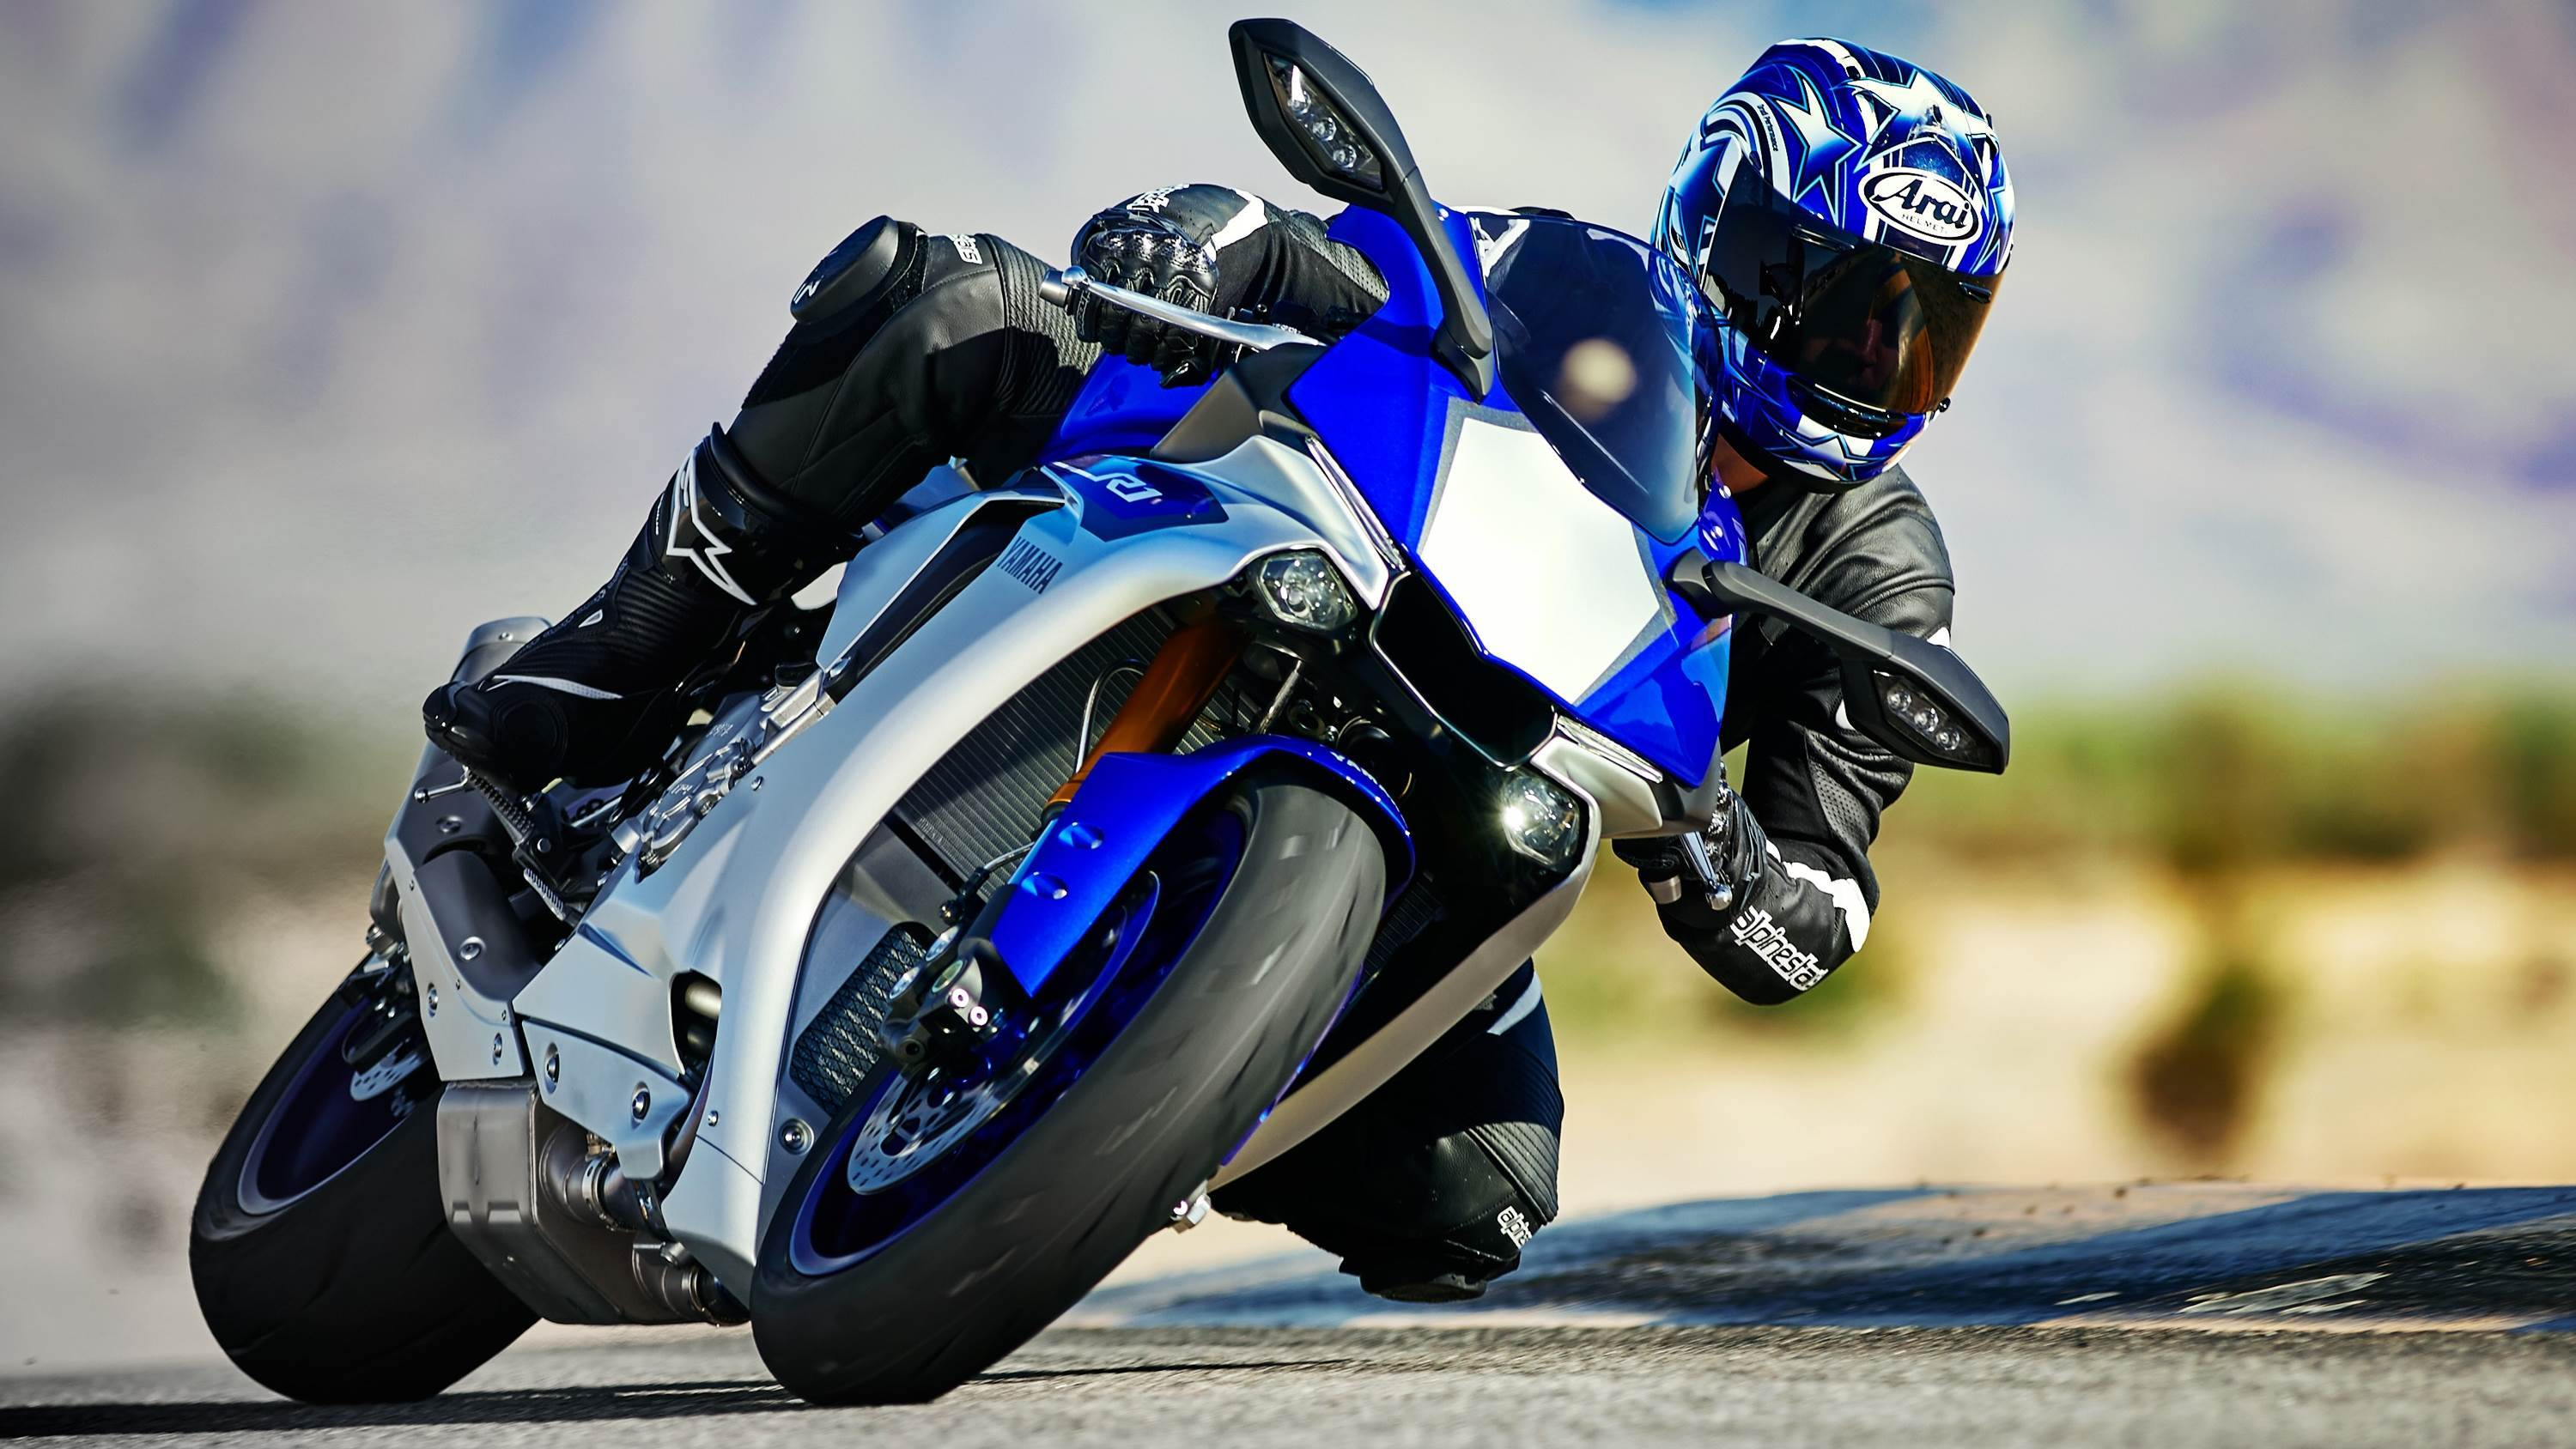 Yamaha YZFR HD Wallpapers Background Images Wallpaper